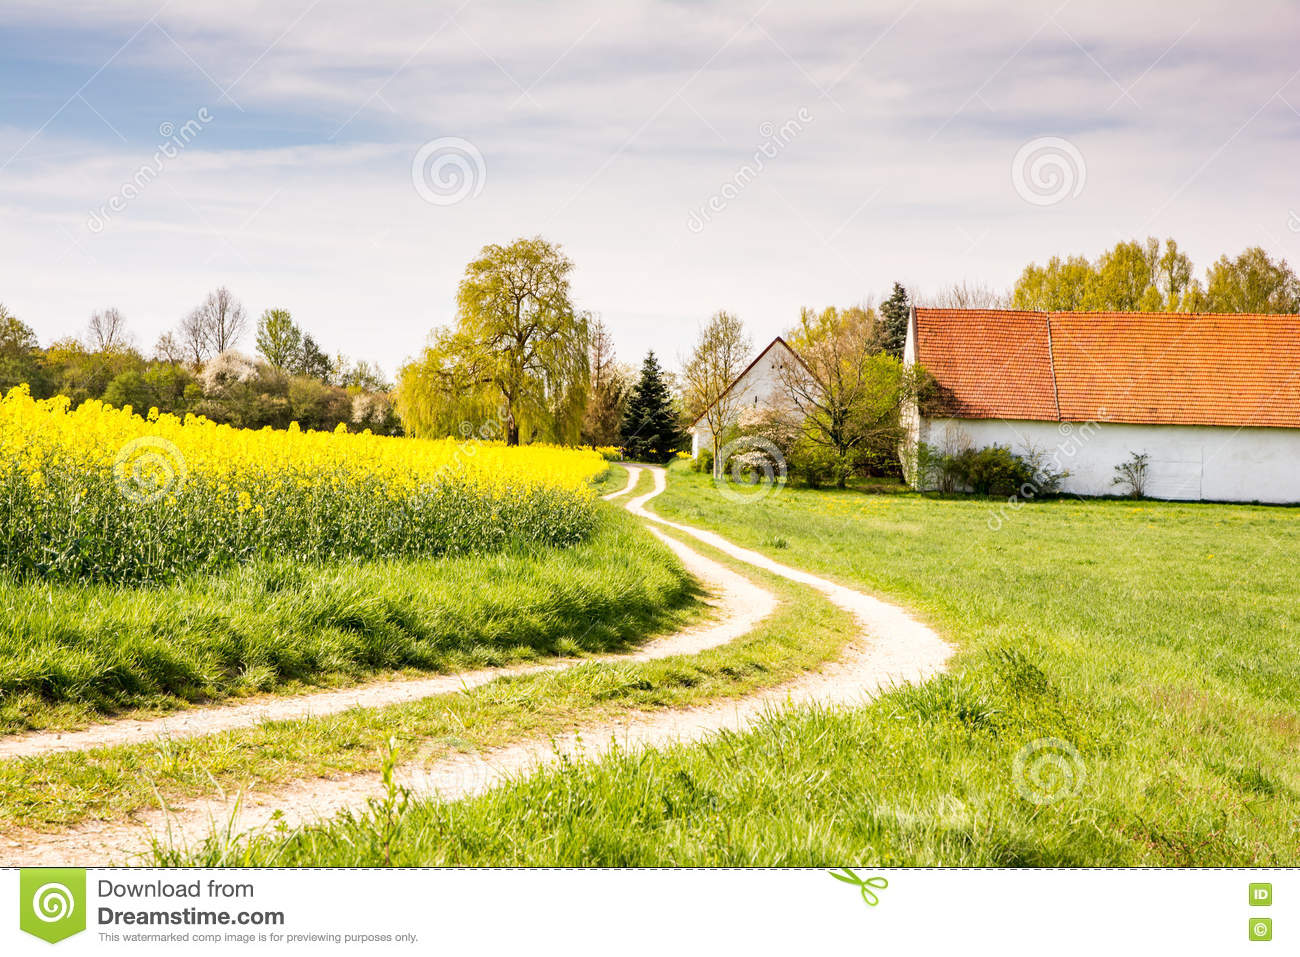 Country road to a farm at a field